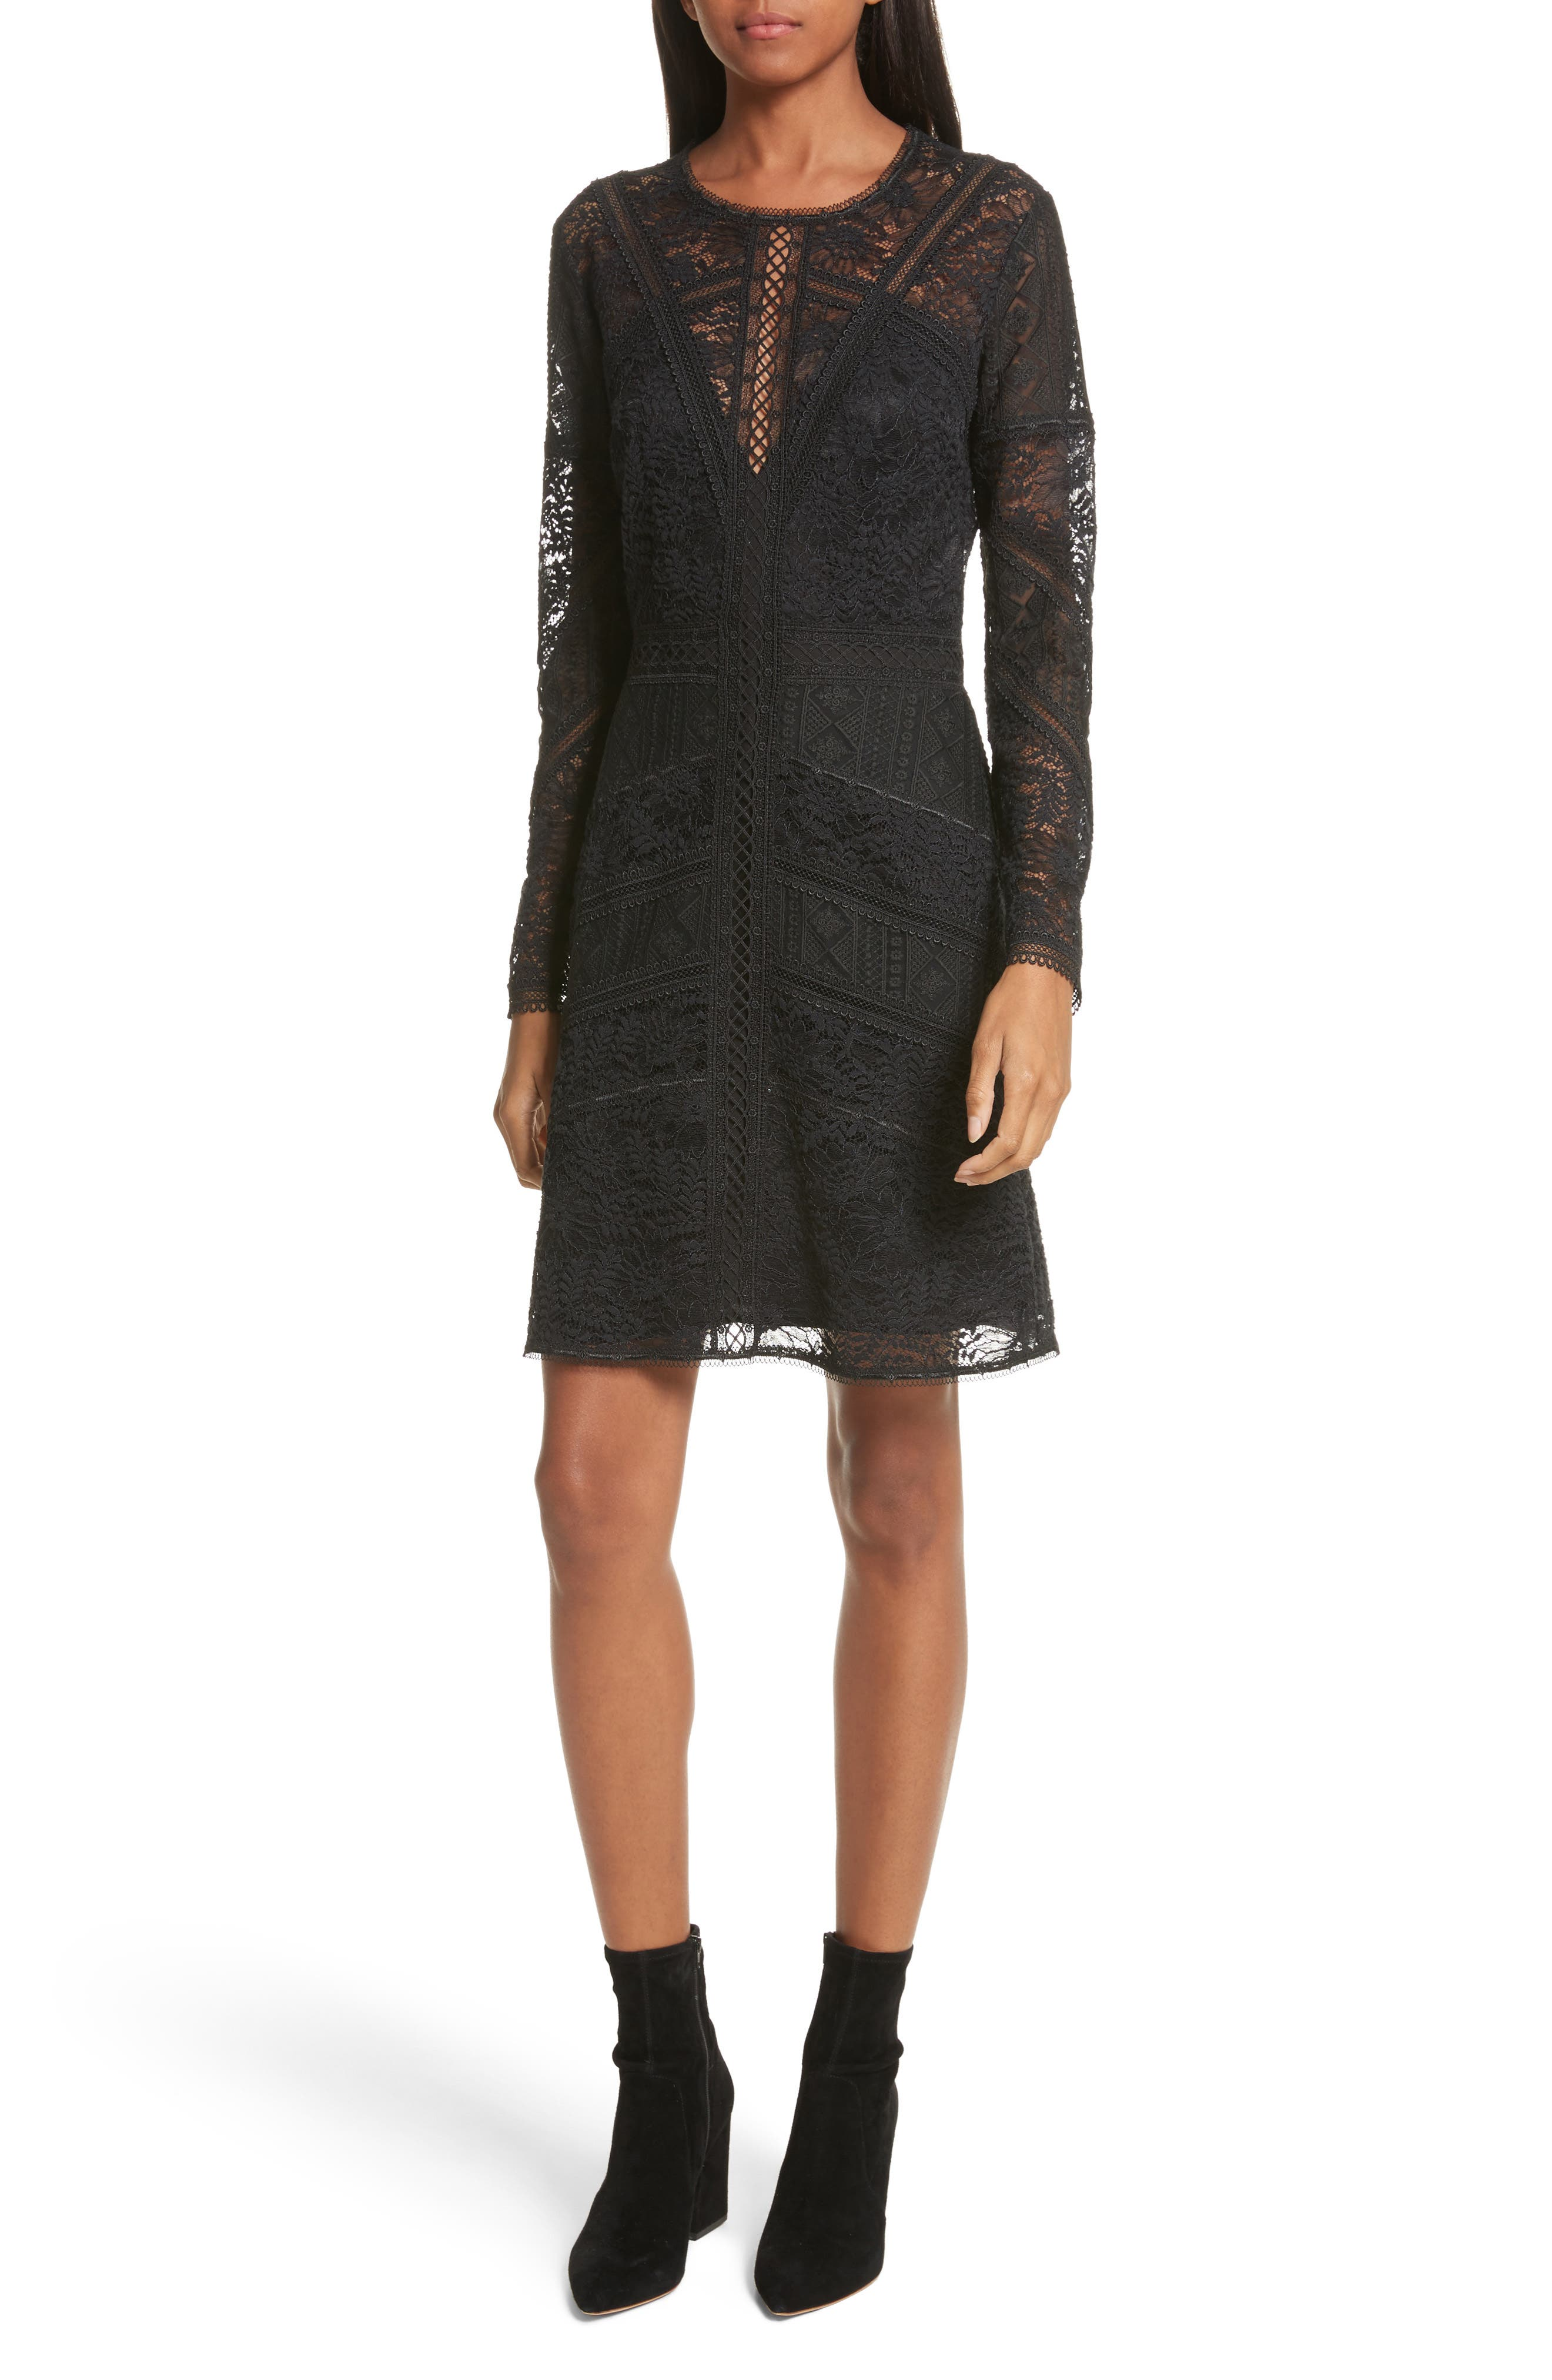 The Kooples Lace Dress